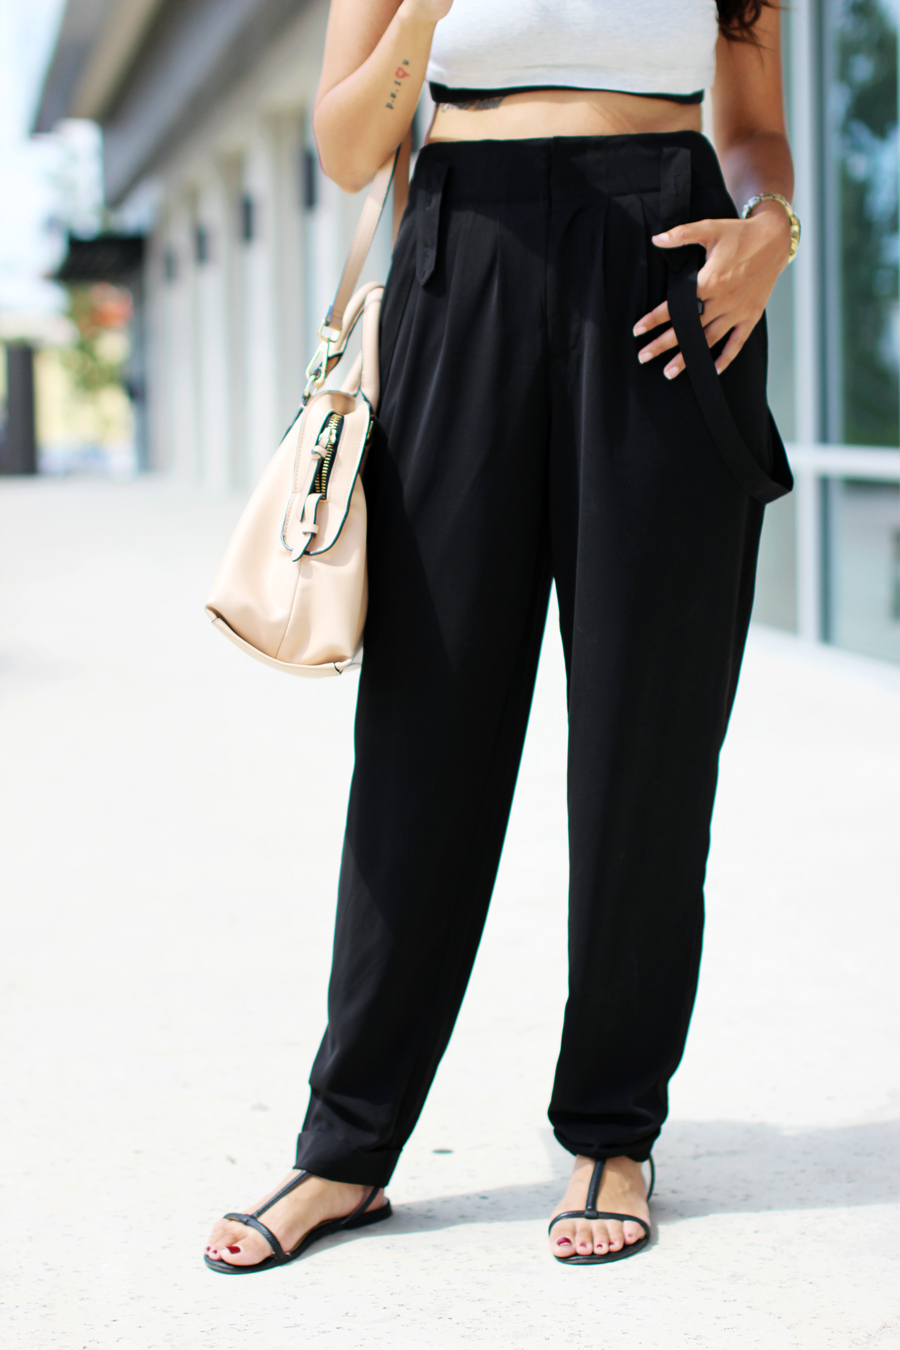 FTT-OVERALL-TROUSER-PANT-CROP-TOP-BLUSH-BAG-2